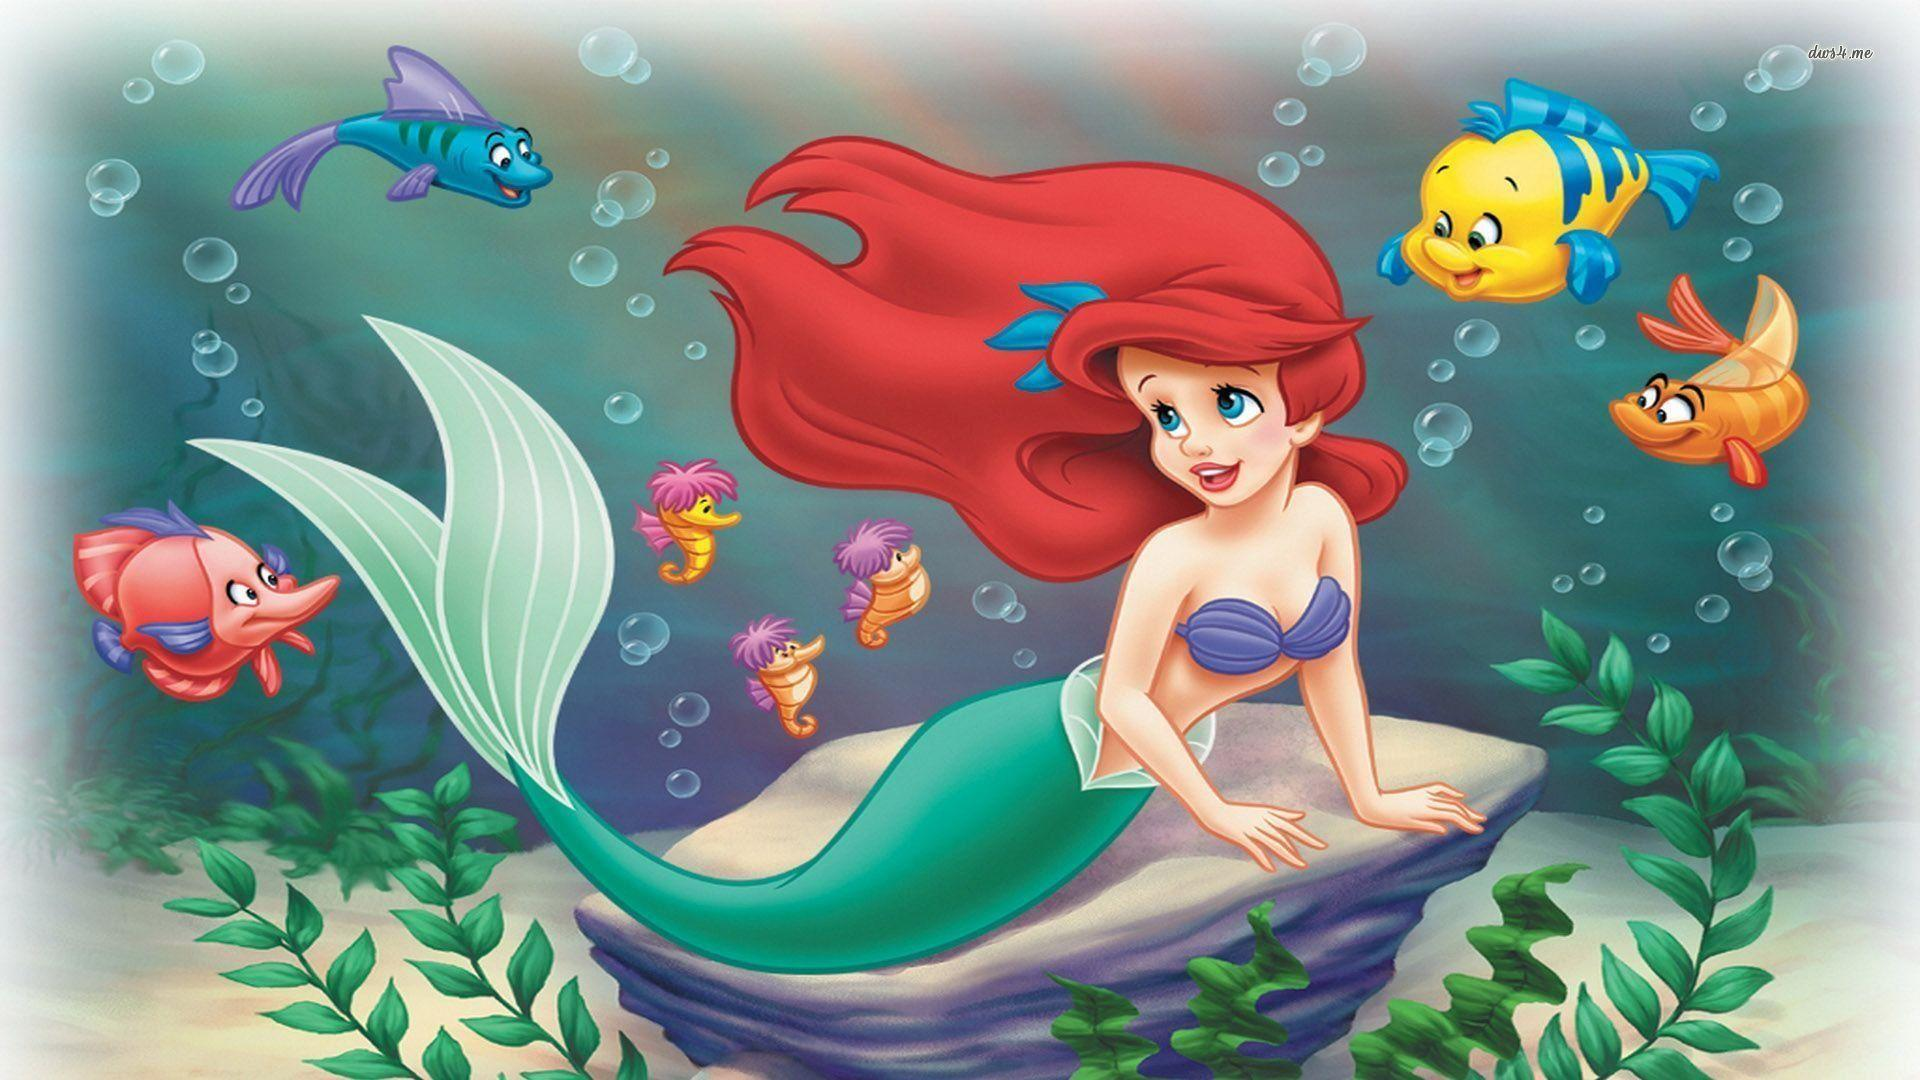 The Little Mermaid Wallpapers - Wallpaper Cave - photo#41